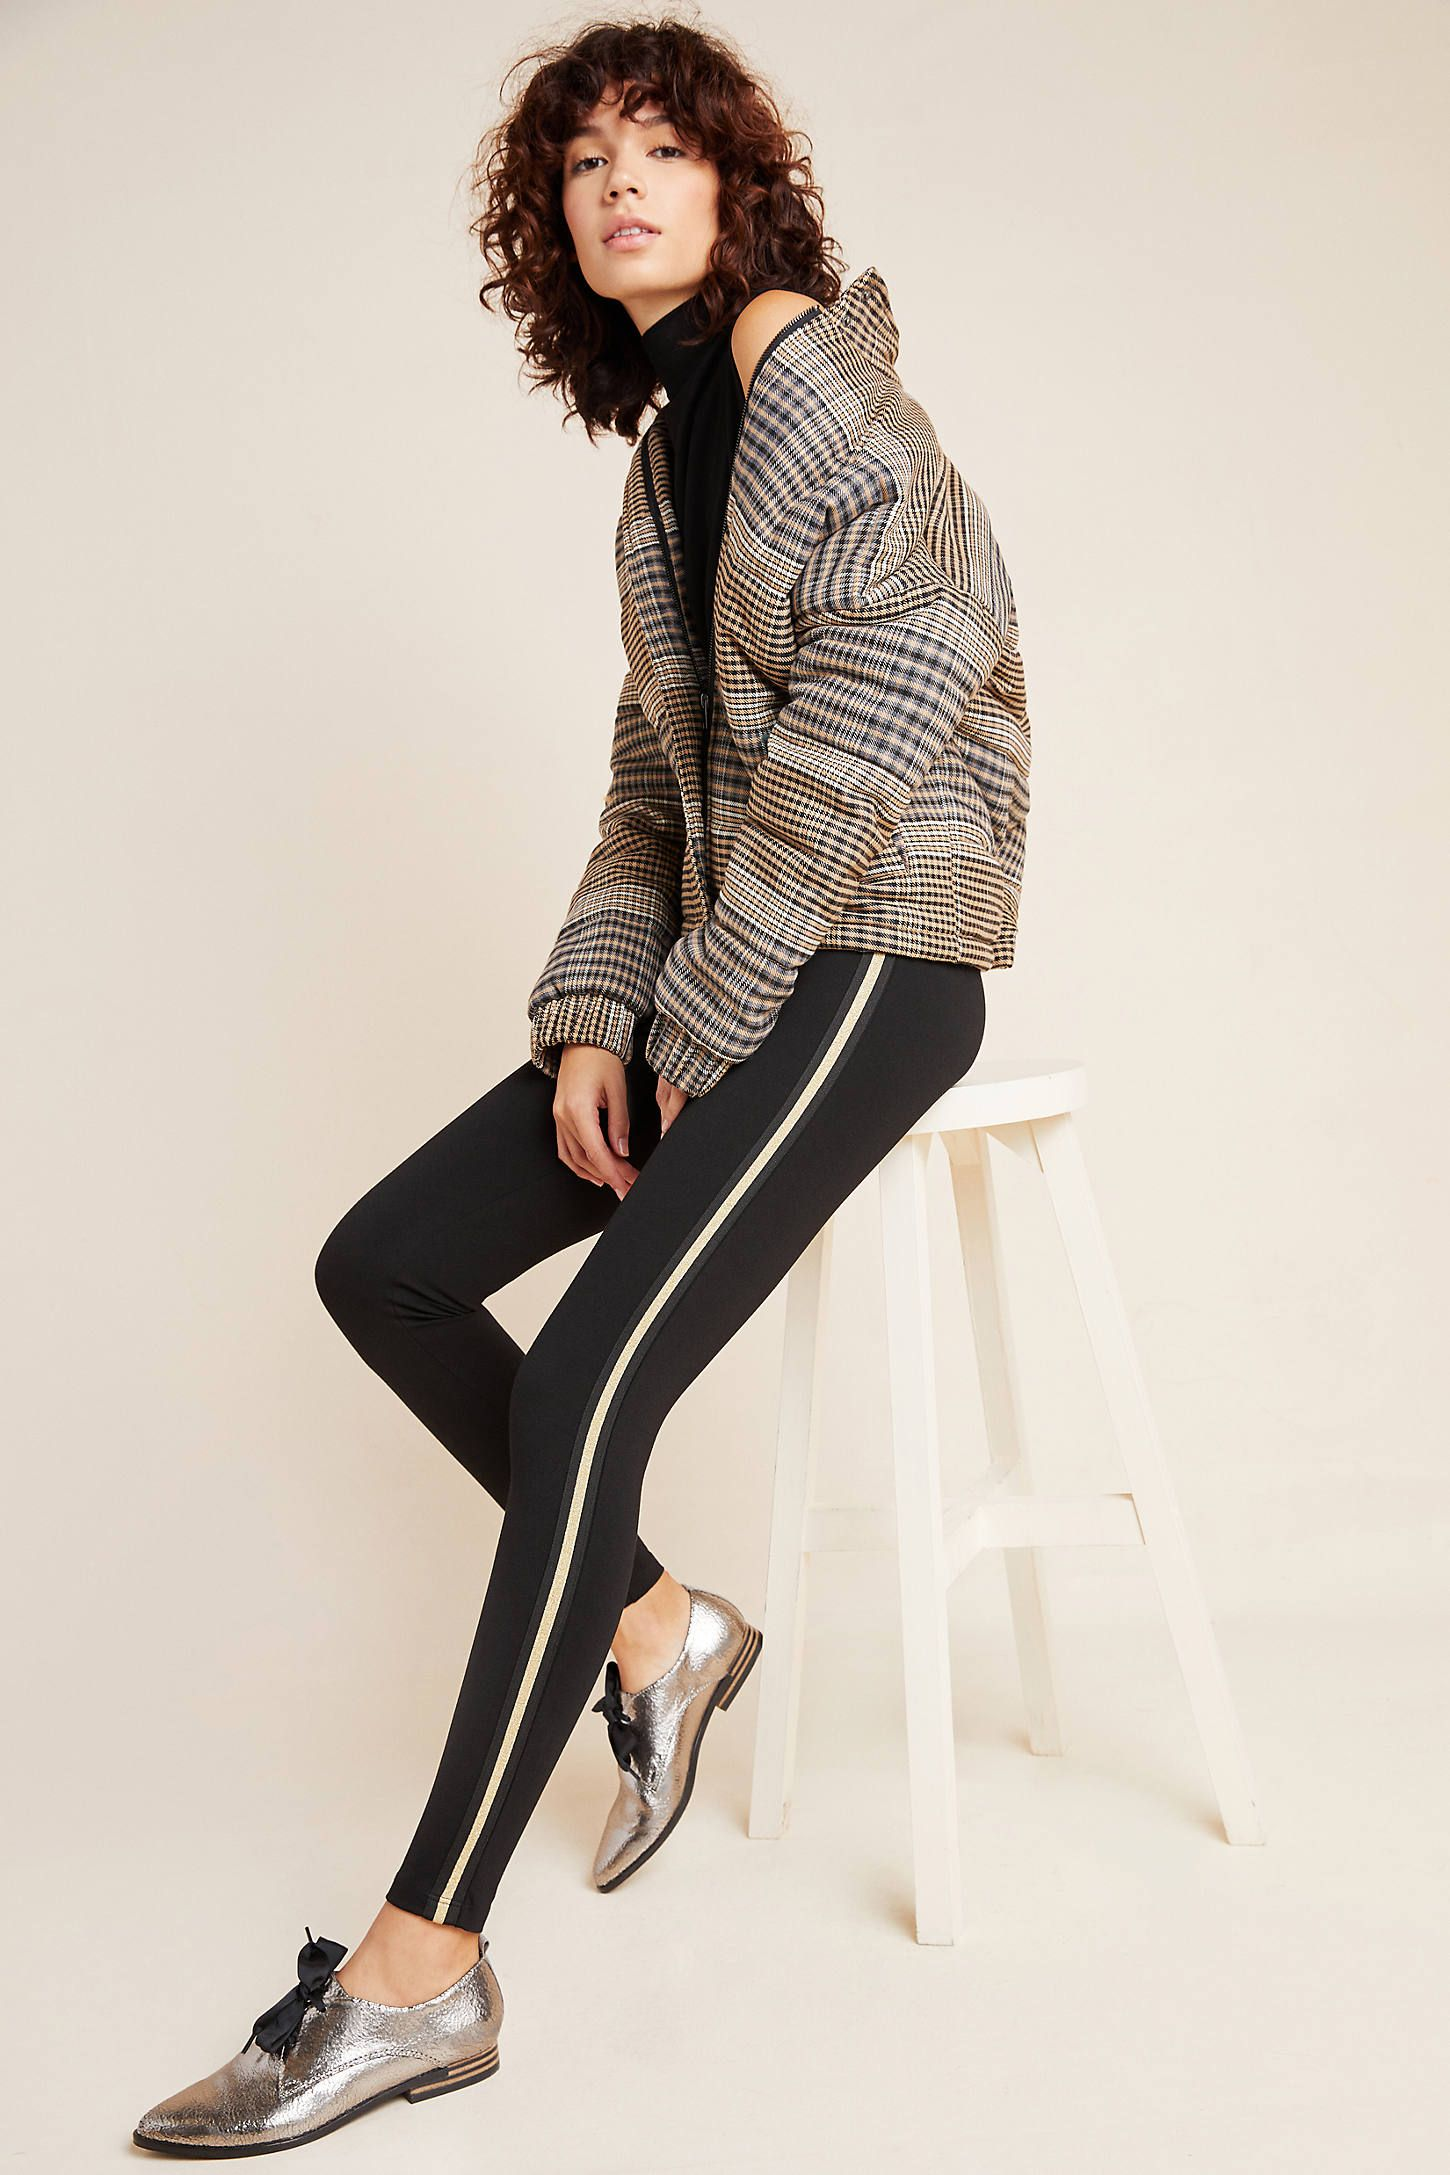 Raquel Side Stripe Leggings by Velvet Graham & Spencer in Black Size: L, Women's at Anthropologie #stripedleggings